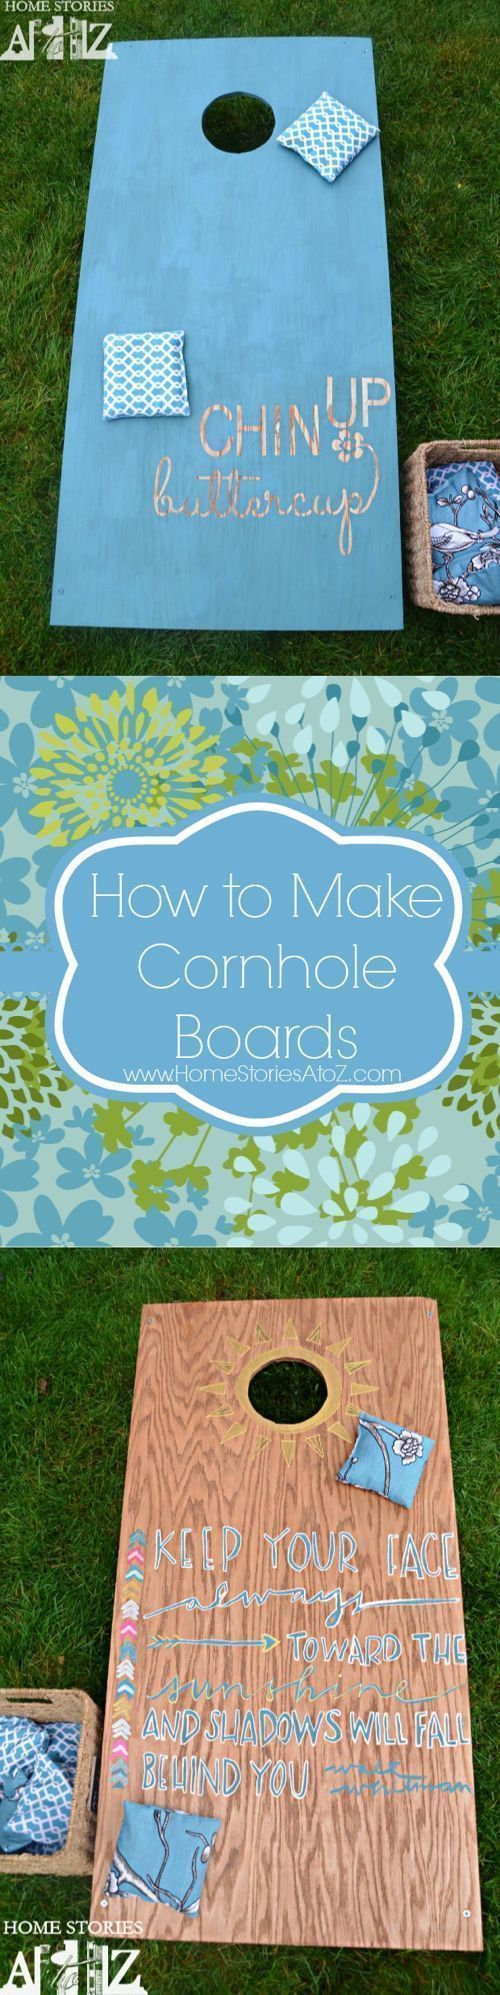 "How to Build a Corn Hole Board ""bean bag toss"" game #bhgsummer"